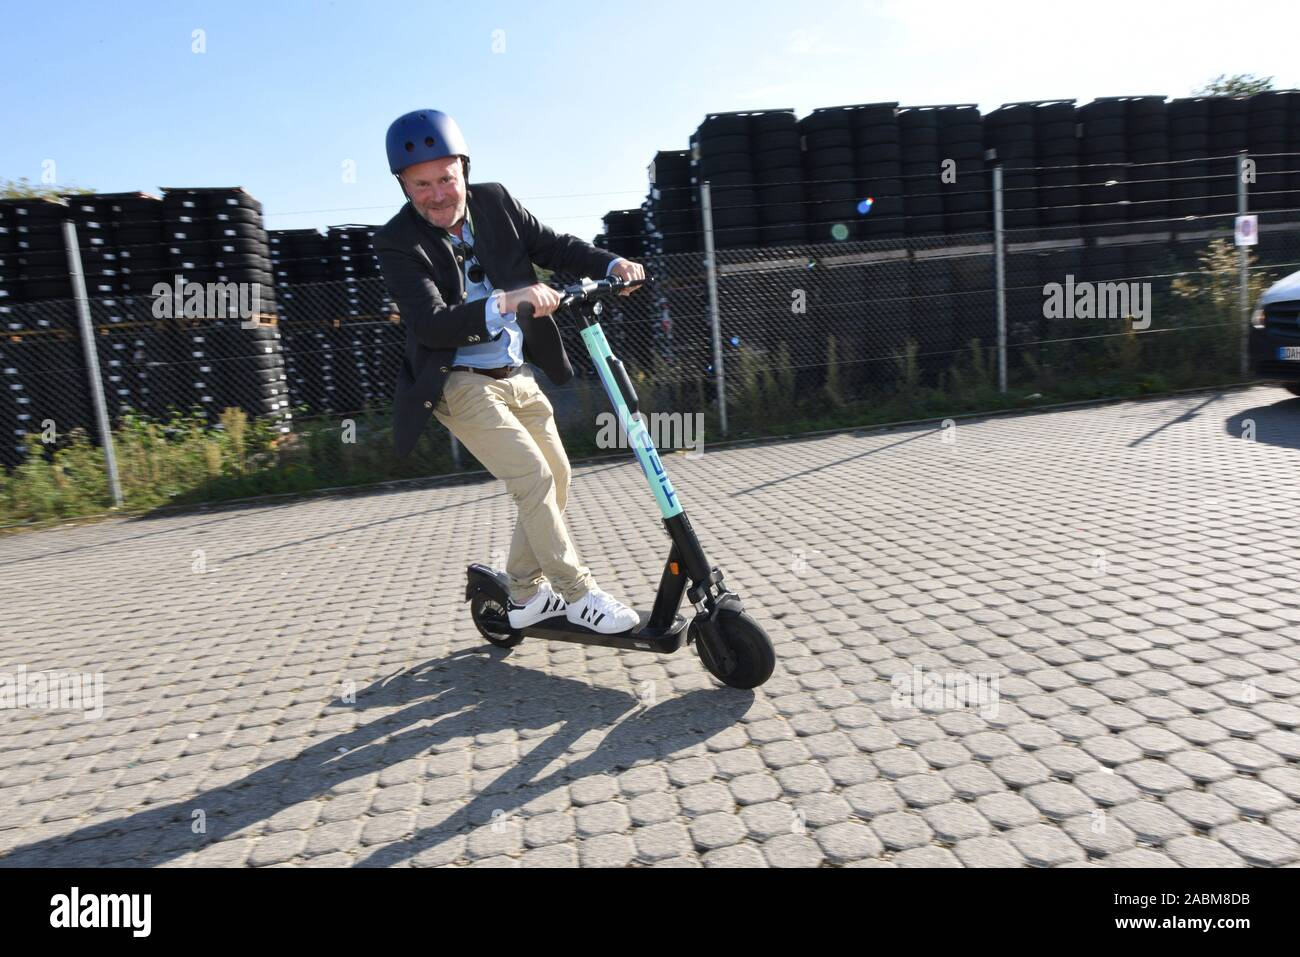 City councillor Christian Vorländer on an electric pedal scooter on TIER's premises in Garching. [automated translation] Stock Photo